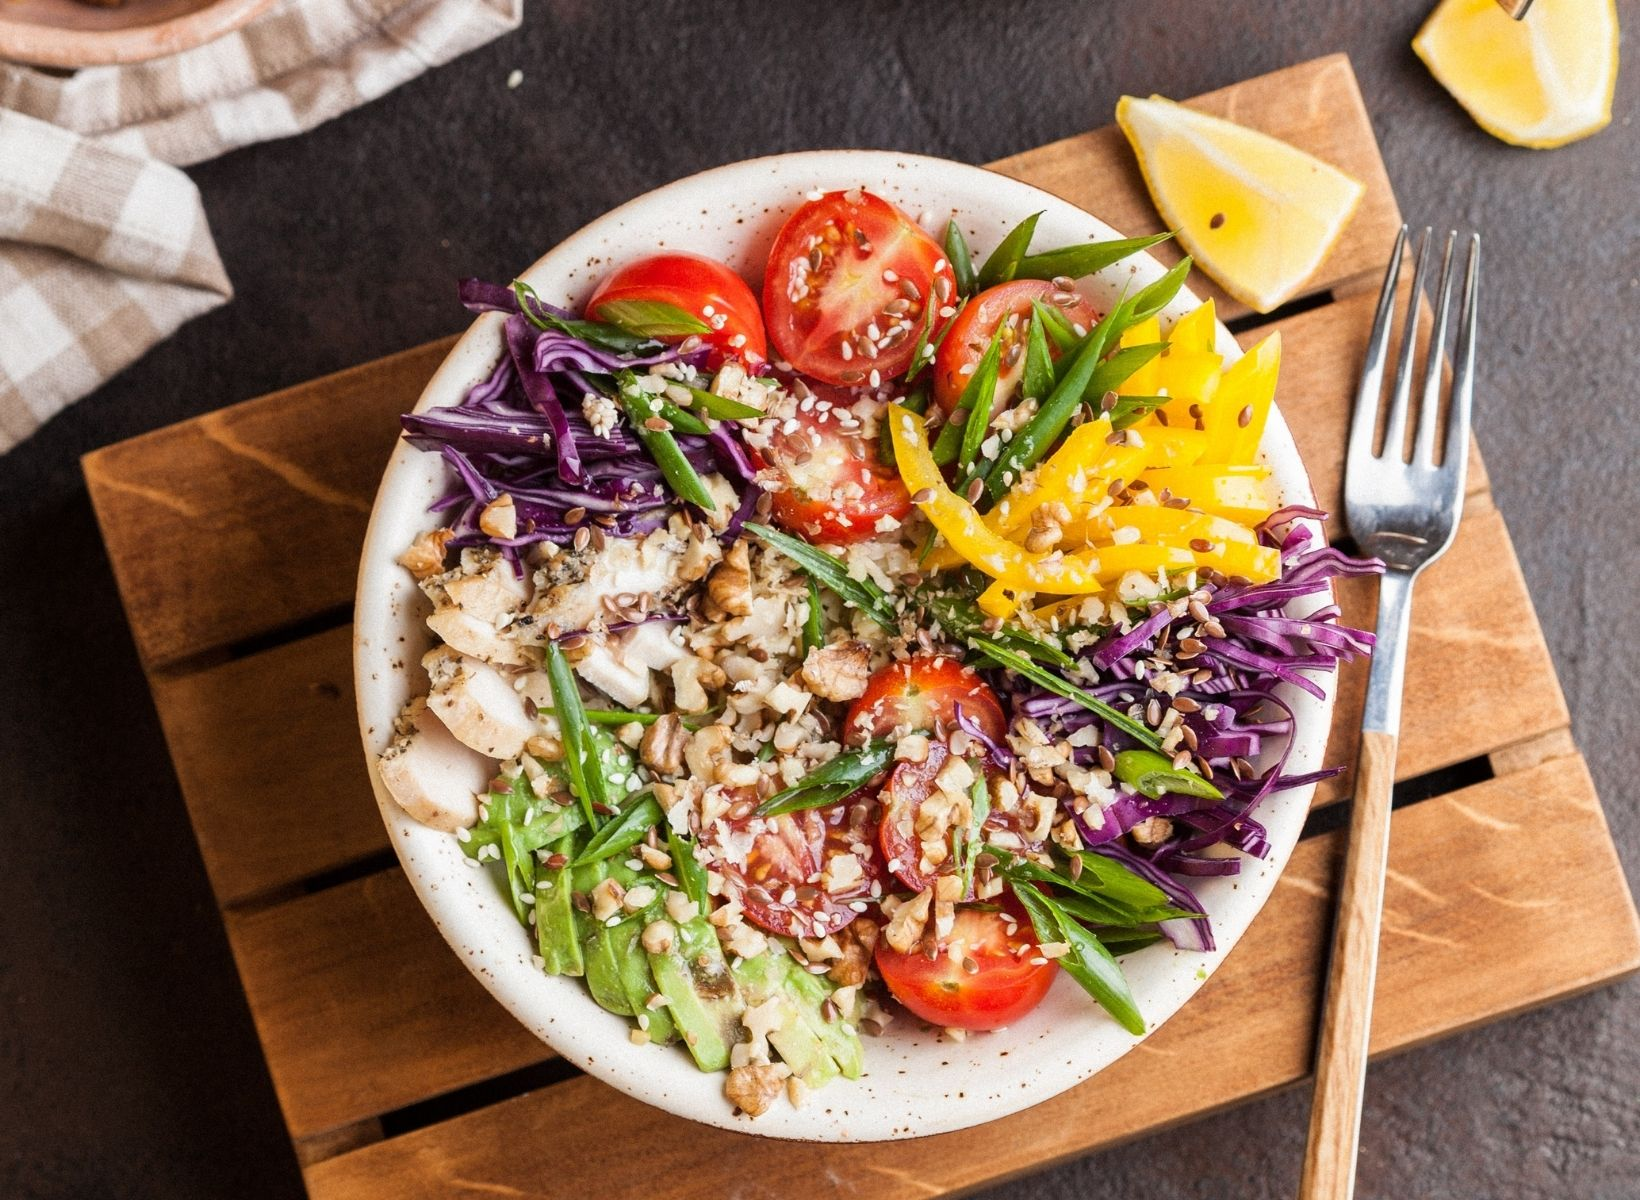 A white bowl filled with low-glycemic vegetables is sitting on a wood cutting board next to a fork and slices of lemon